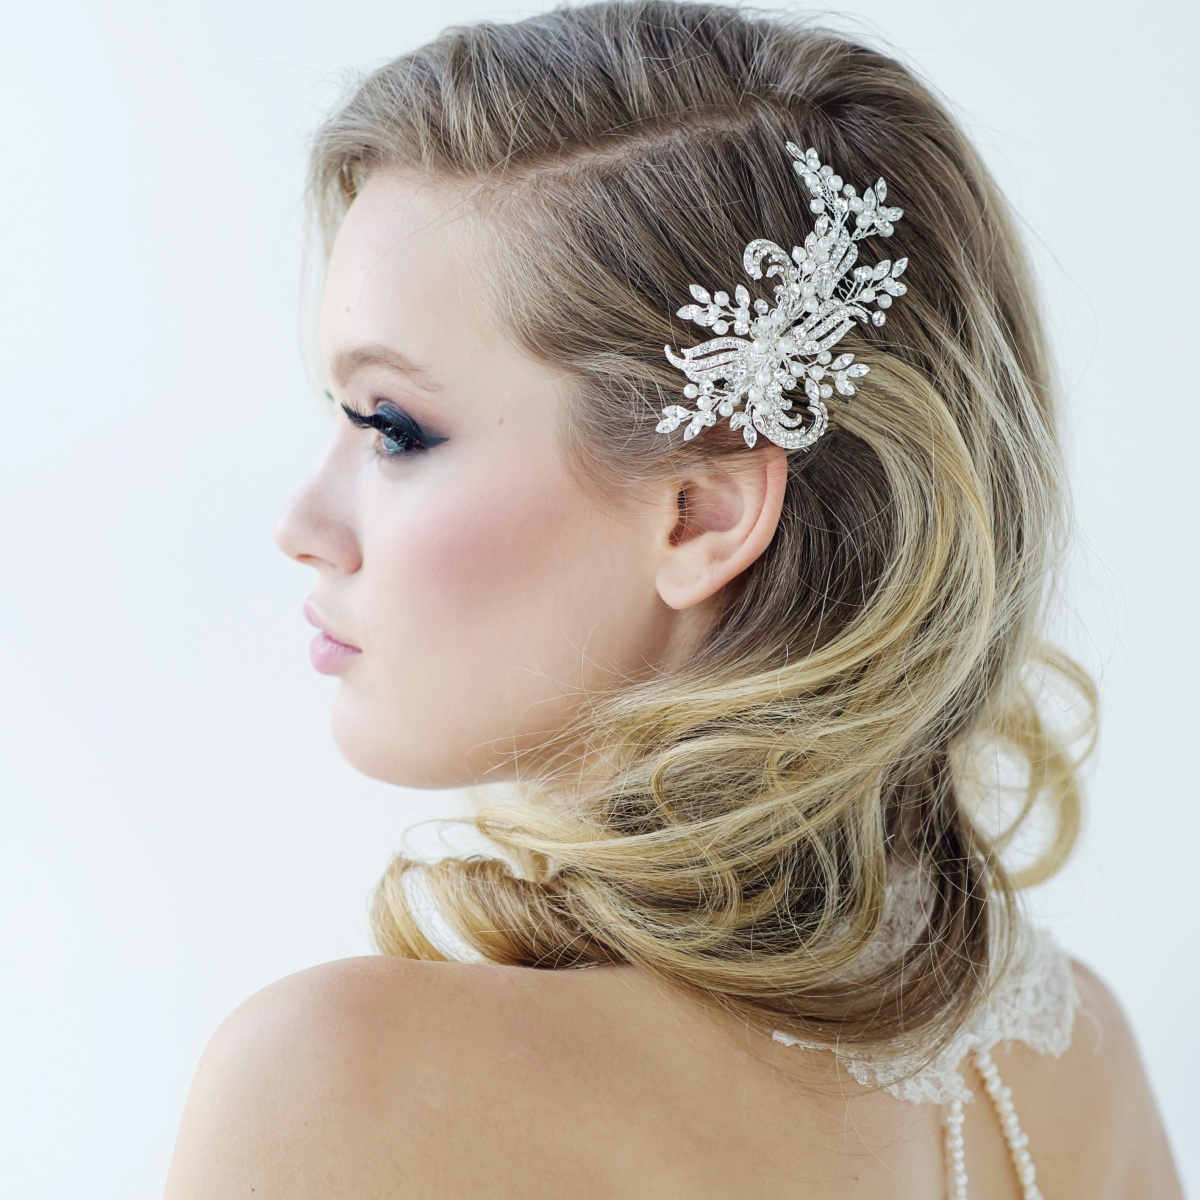 bridal wedding accessories uk - 28 images - wedding hair